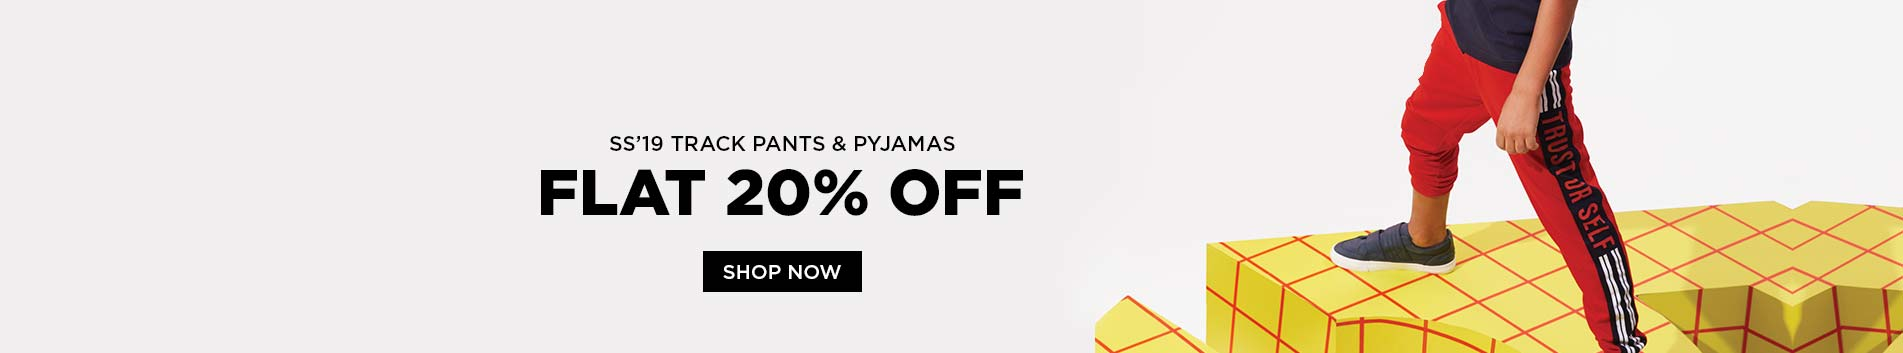 Boys Trackpants & Pyjamas